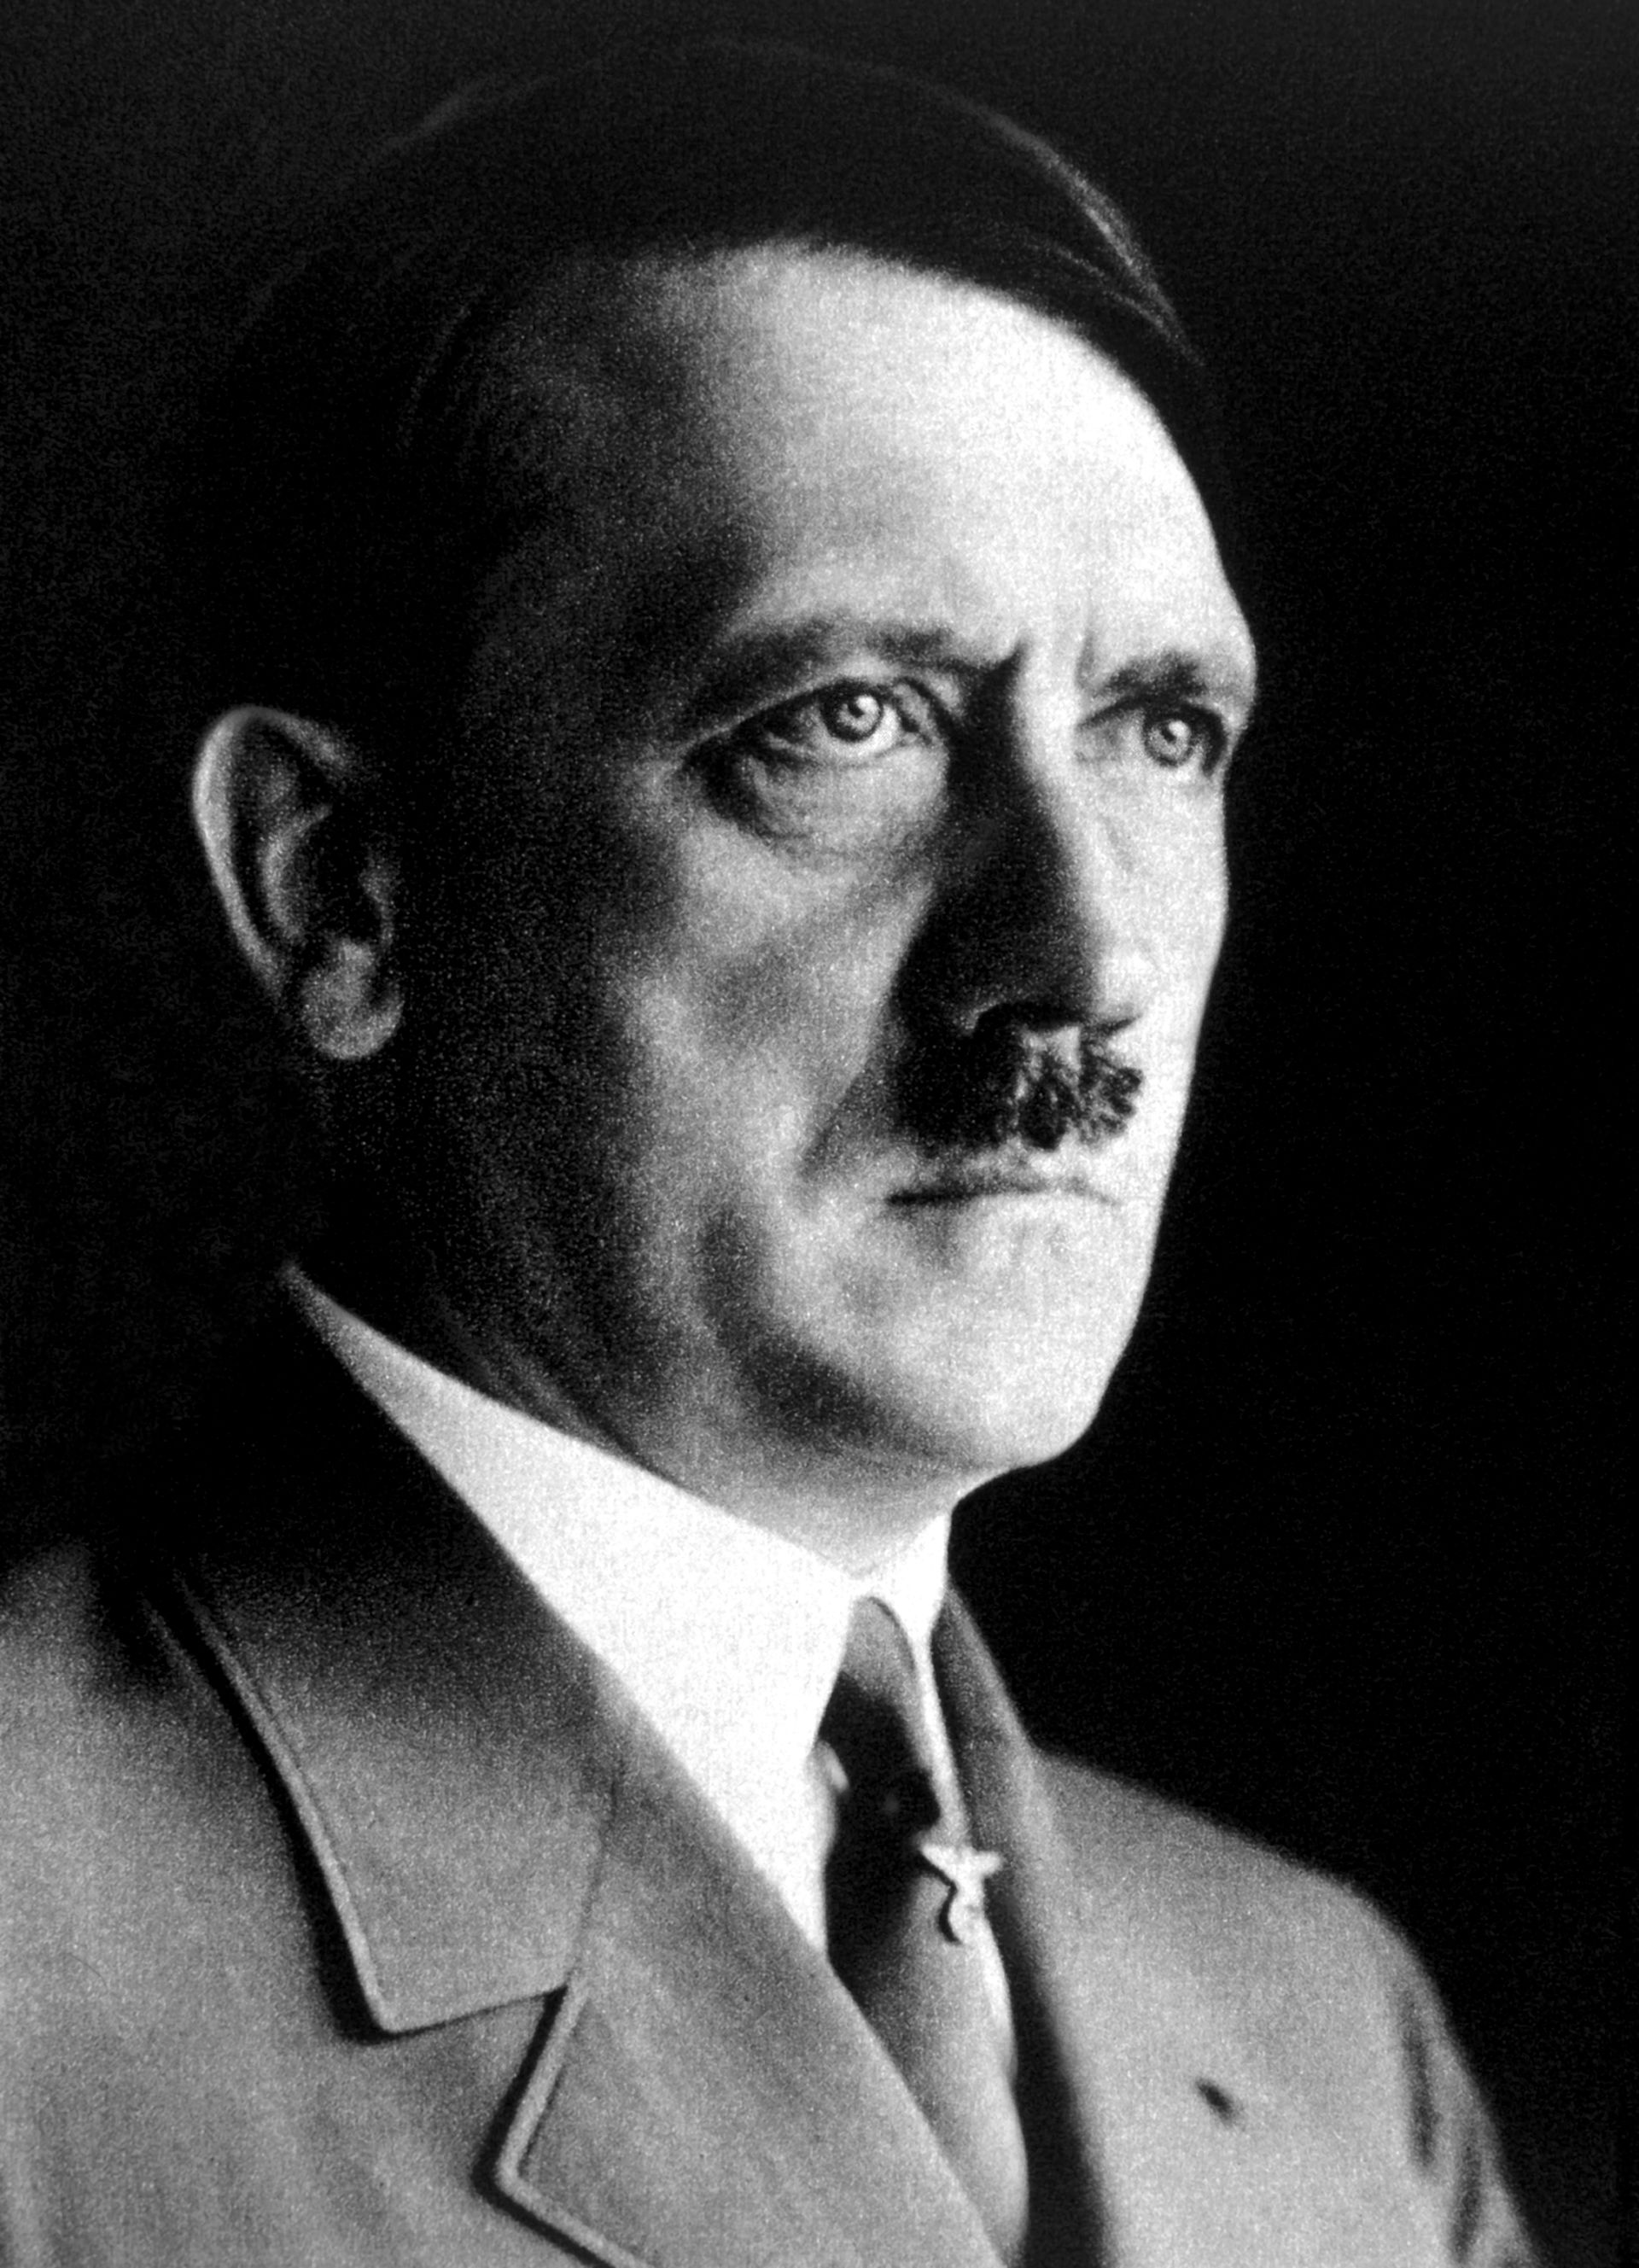 Adolf Hitler in popular culture - Wikipedia